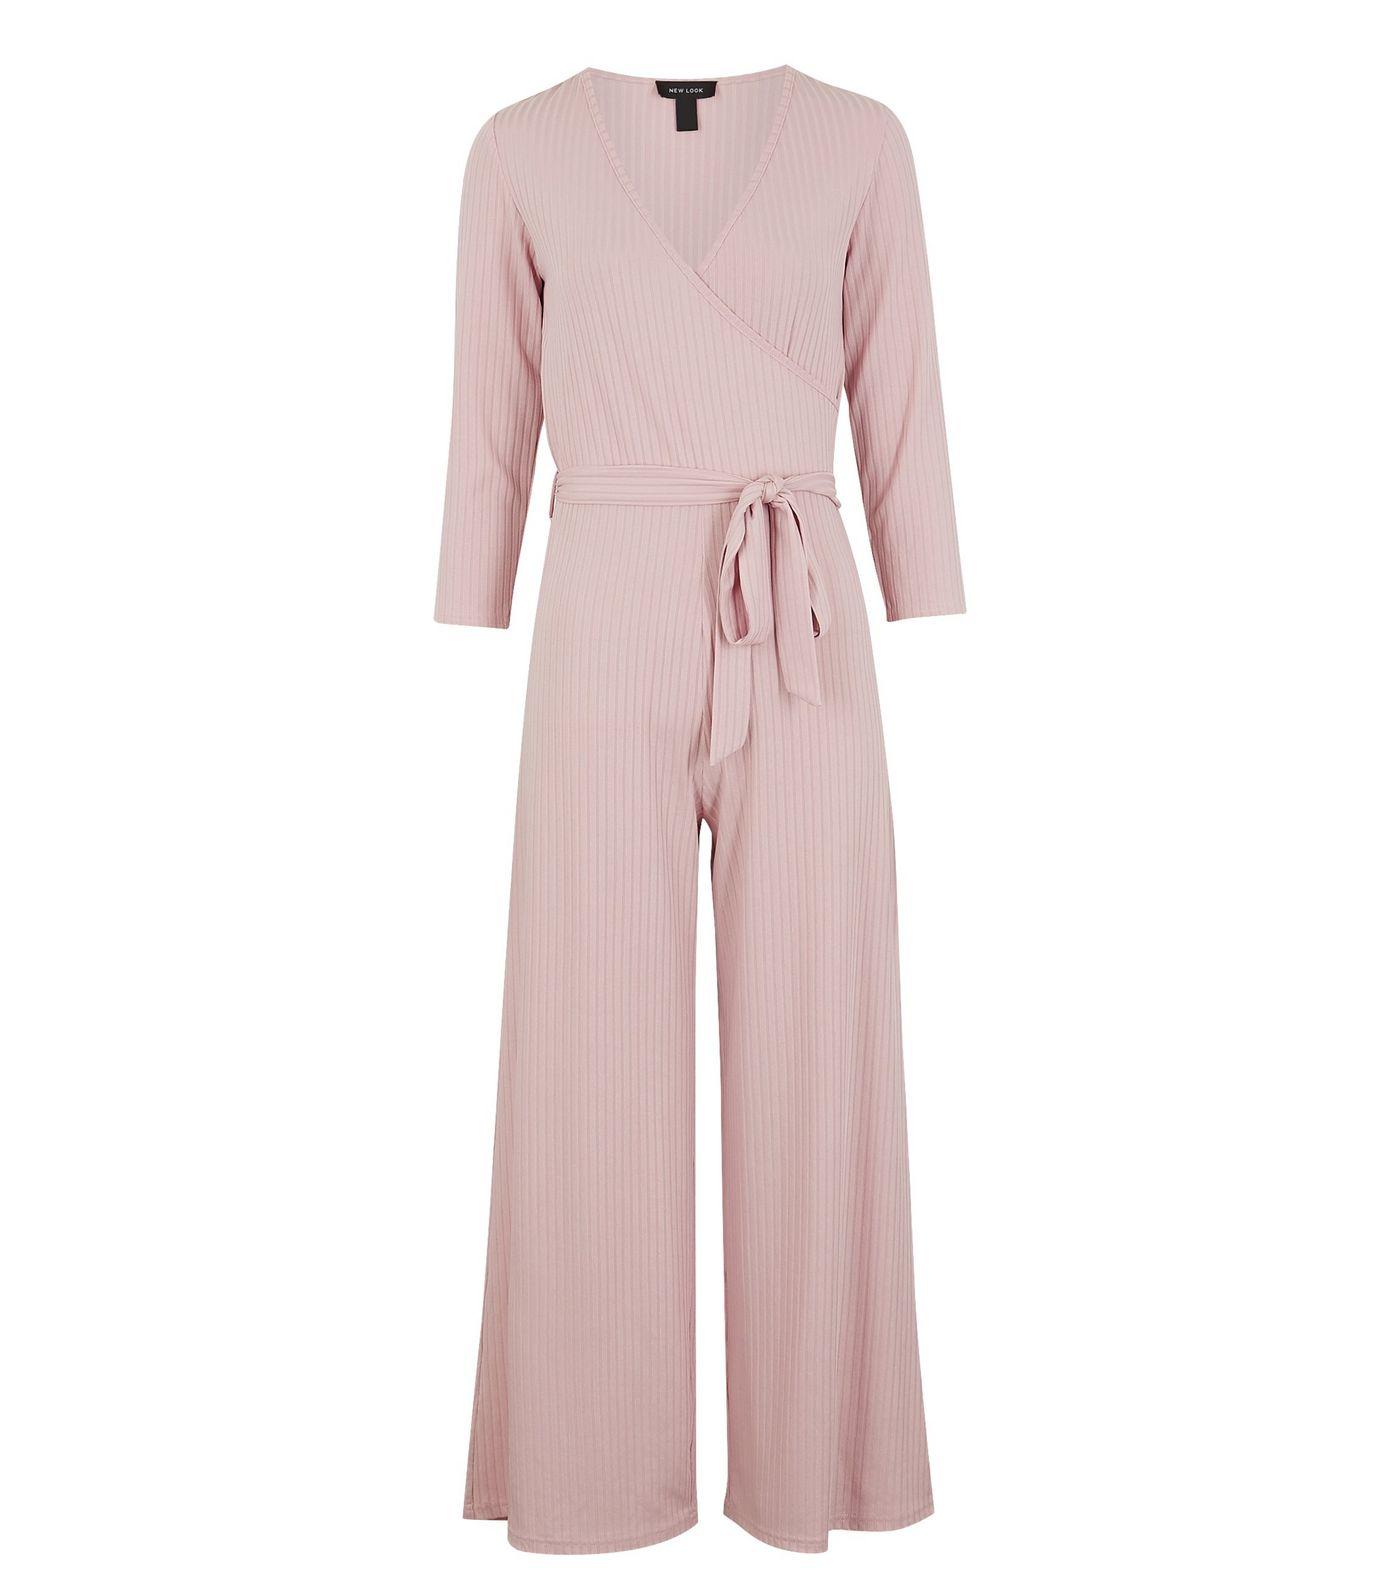 Pale Pink Jersey Wrap Wide Leg Jumpsuit, £25.99 from New Look